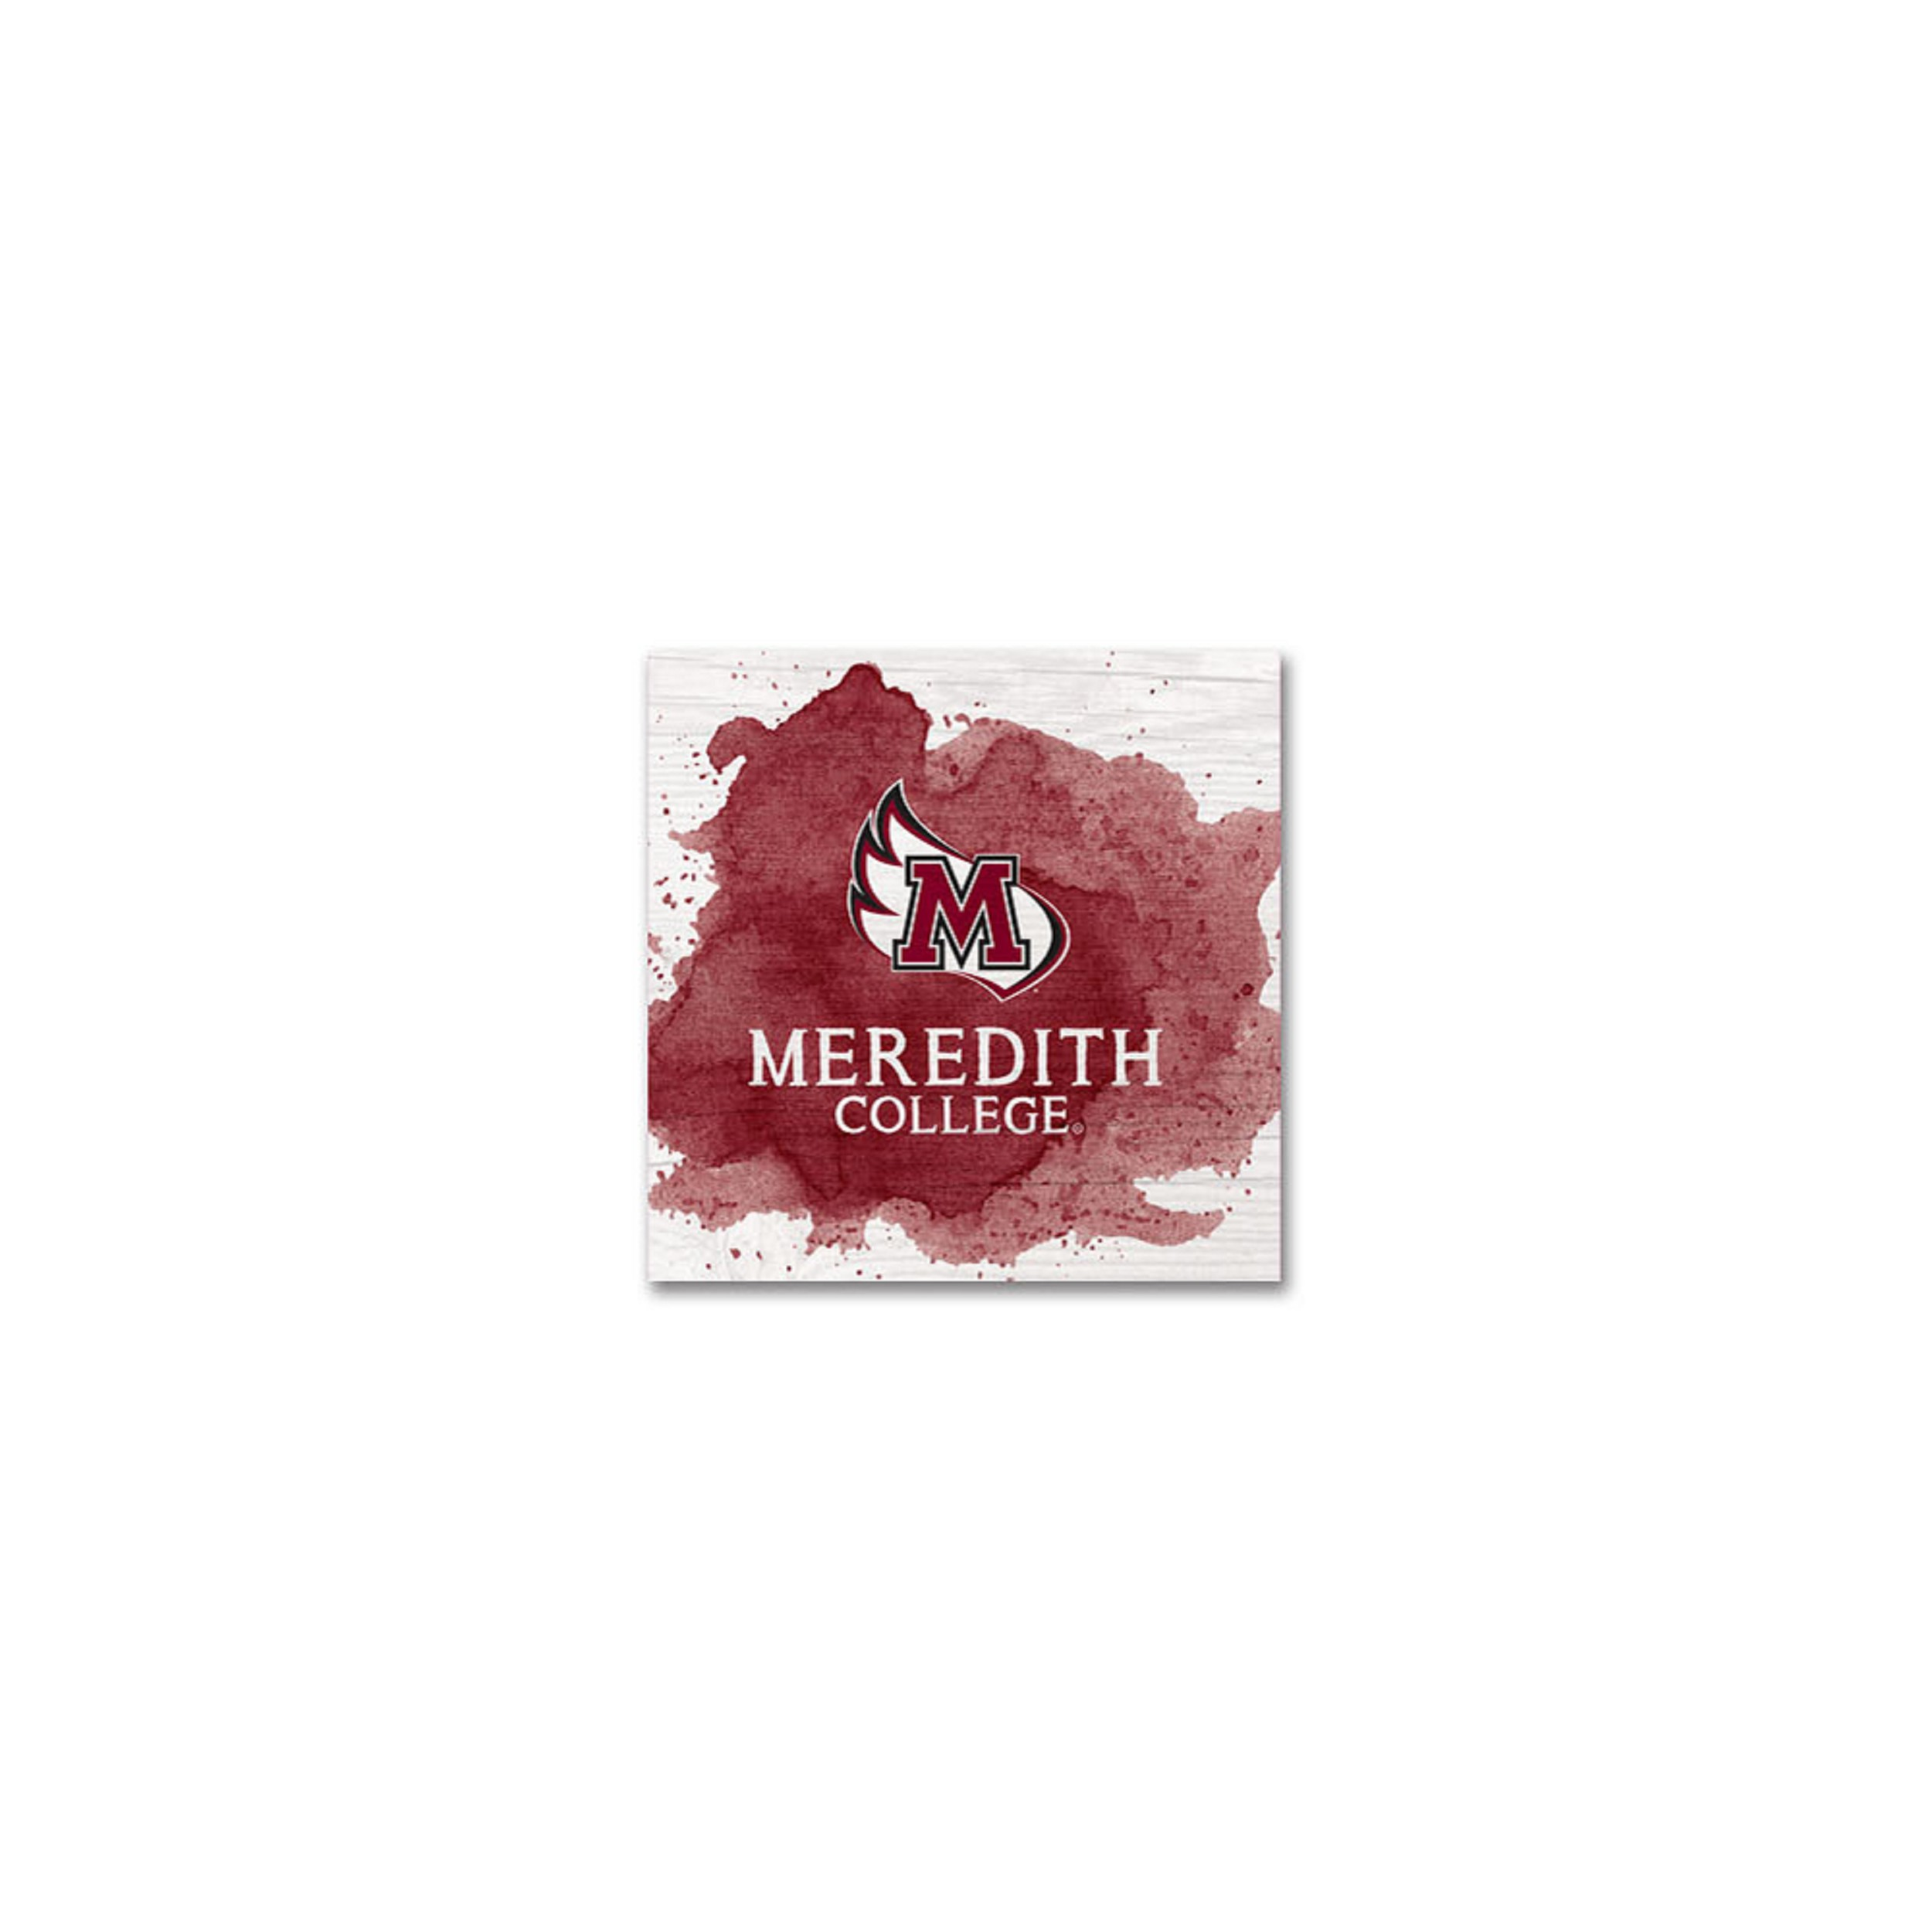 Image for the Small Square Block, Maroon Color Splash, Meredith College product